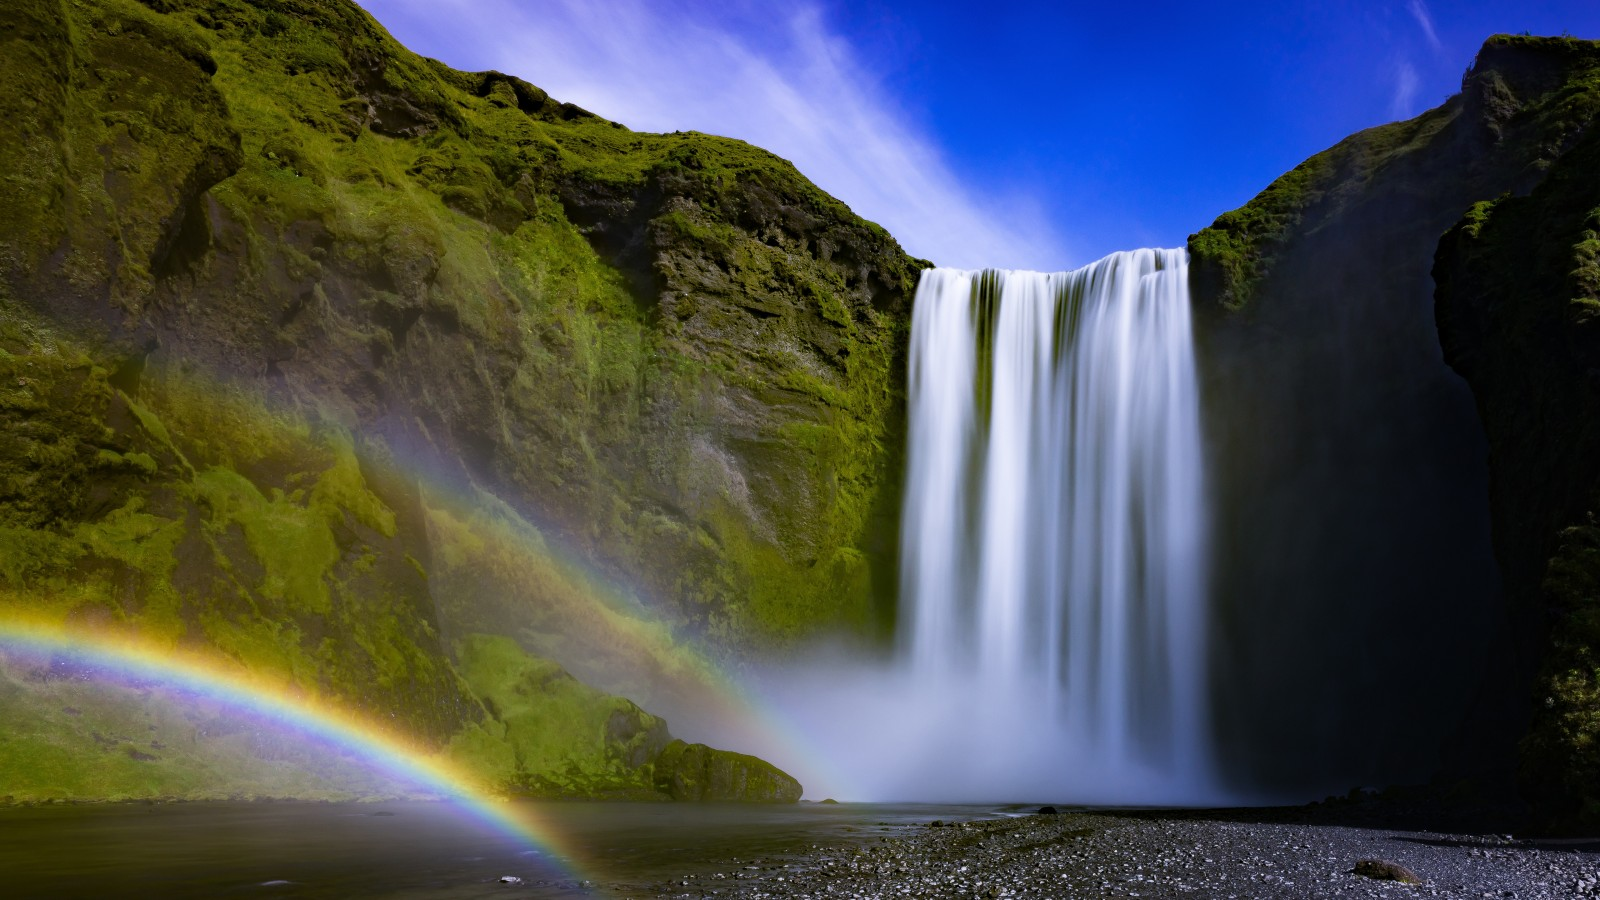 Beautiful Wallpapers For Iphone 6 Plus Skogafoss Waterfall Iceland 4k Wallpapers Hd Wallpapers